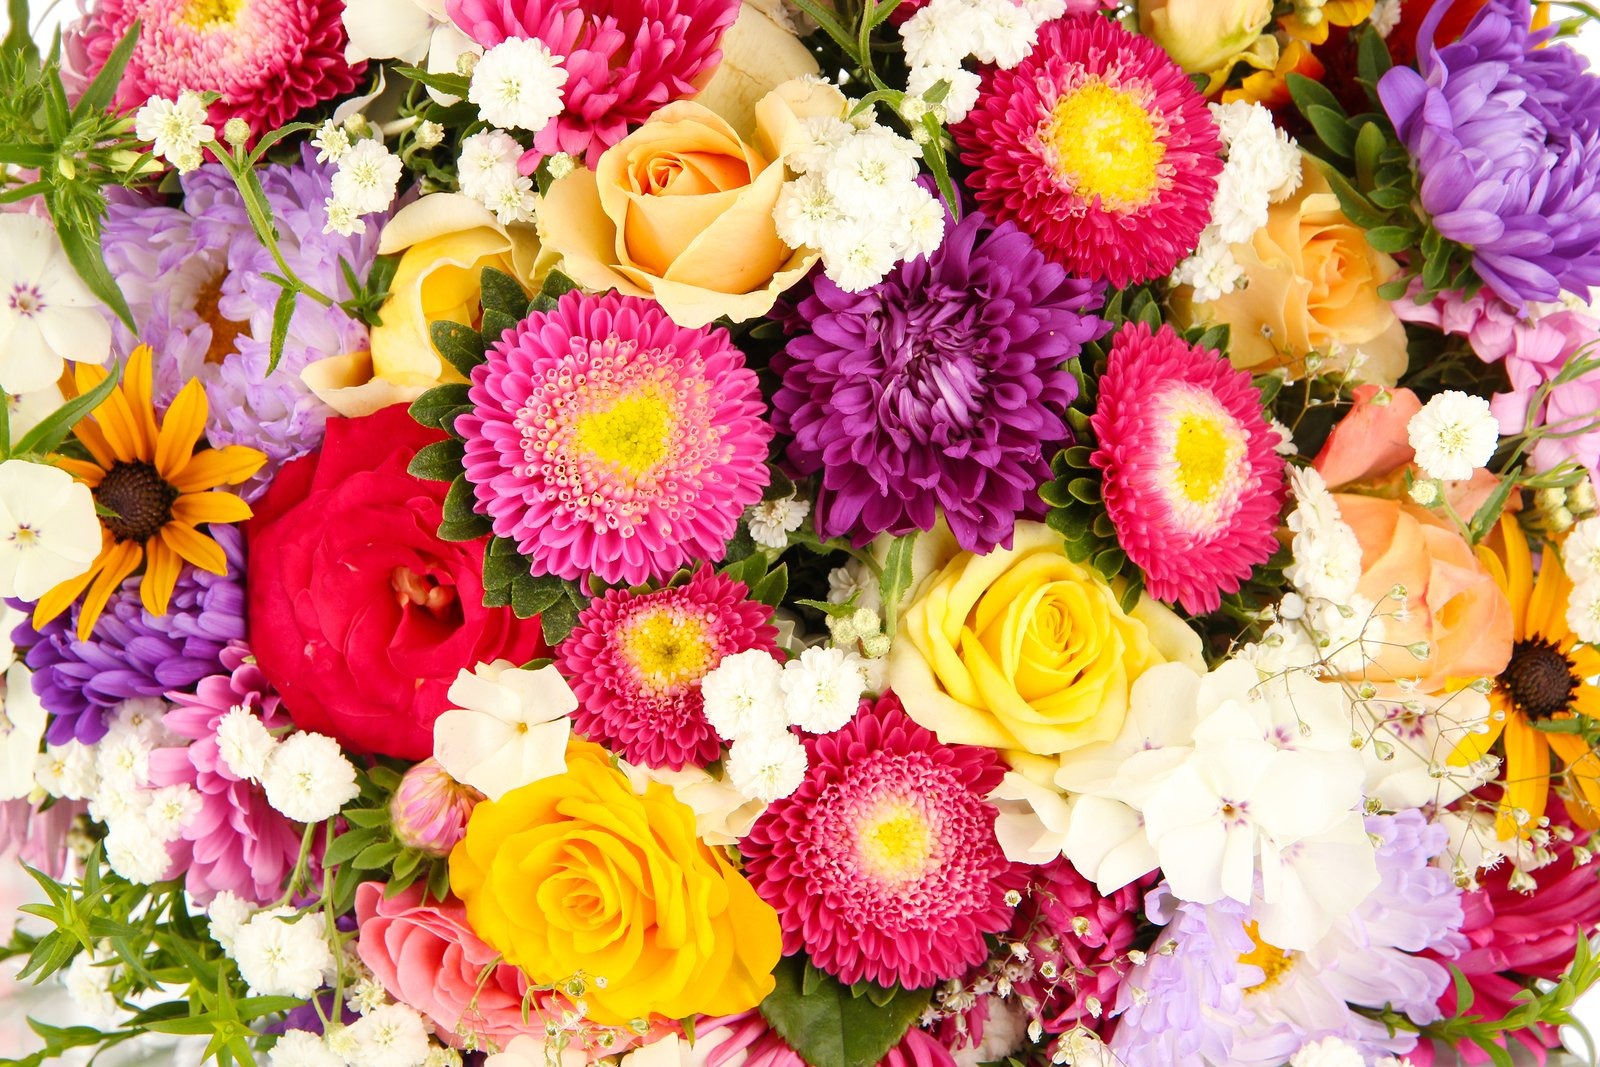 Bright Flower Wallpaper: Colorful Flowers Wallpaper And Background Image